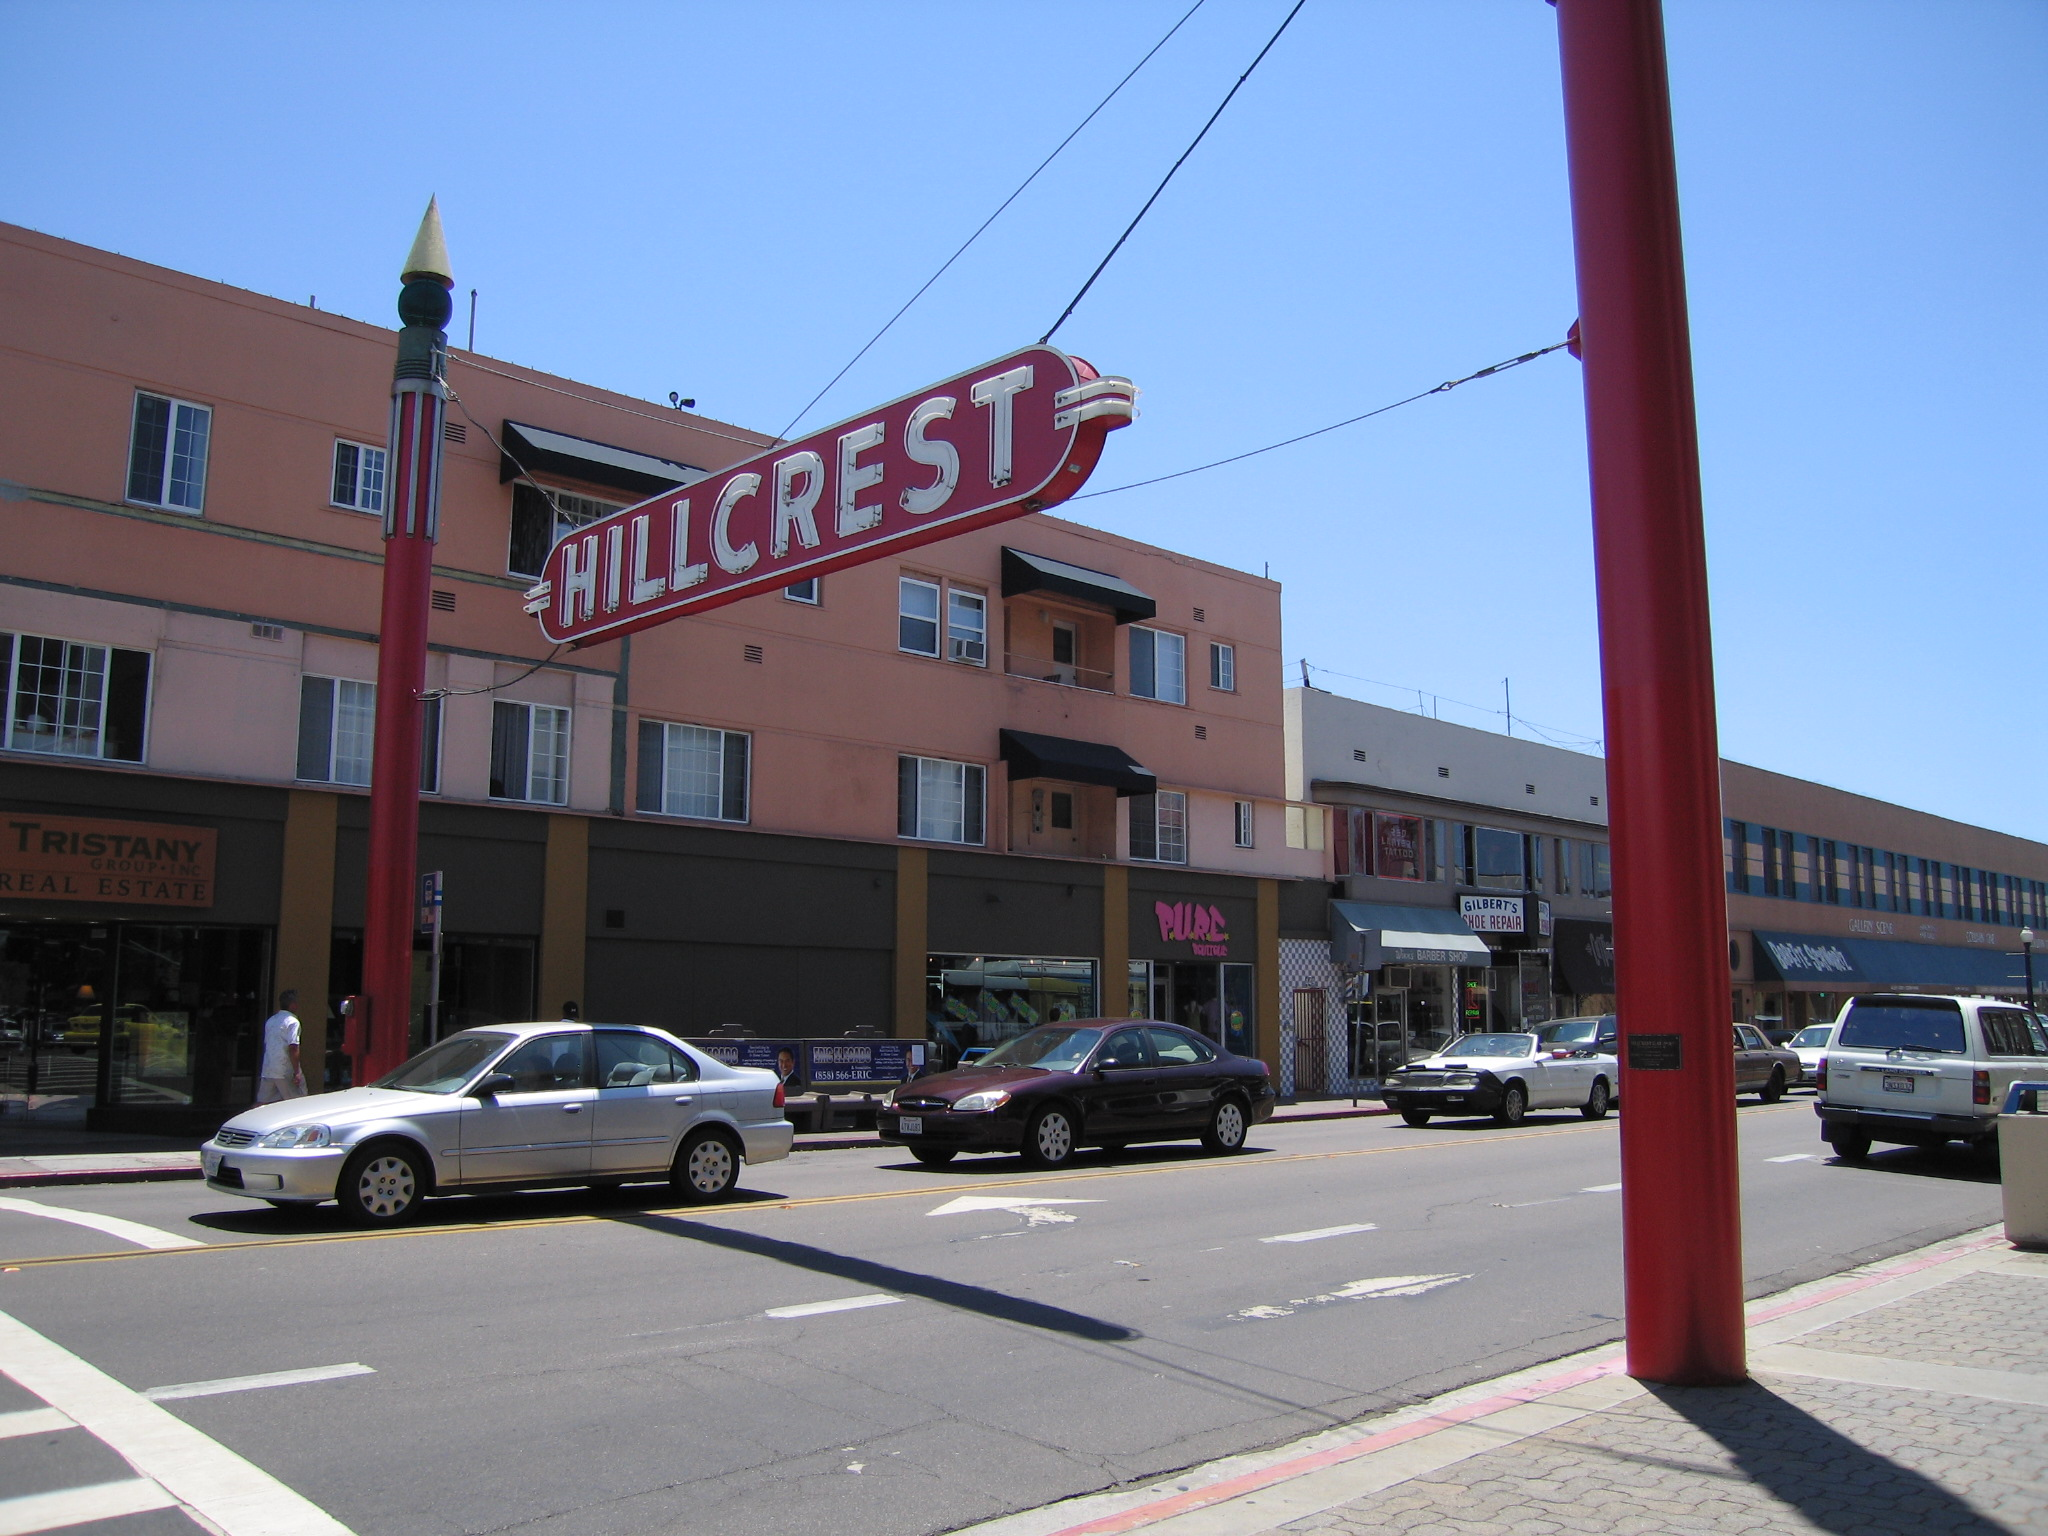 University Avenue in Hillcrest, the heart of San Diego's LGBTQ community and a favorite neighborhood during San Diego Pride